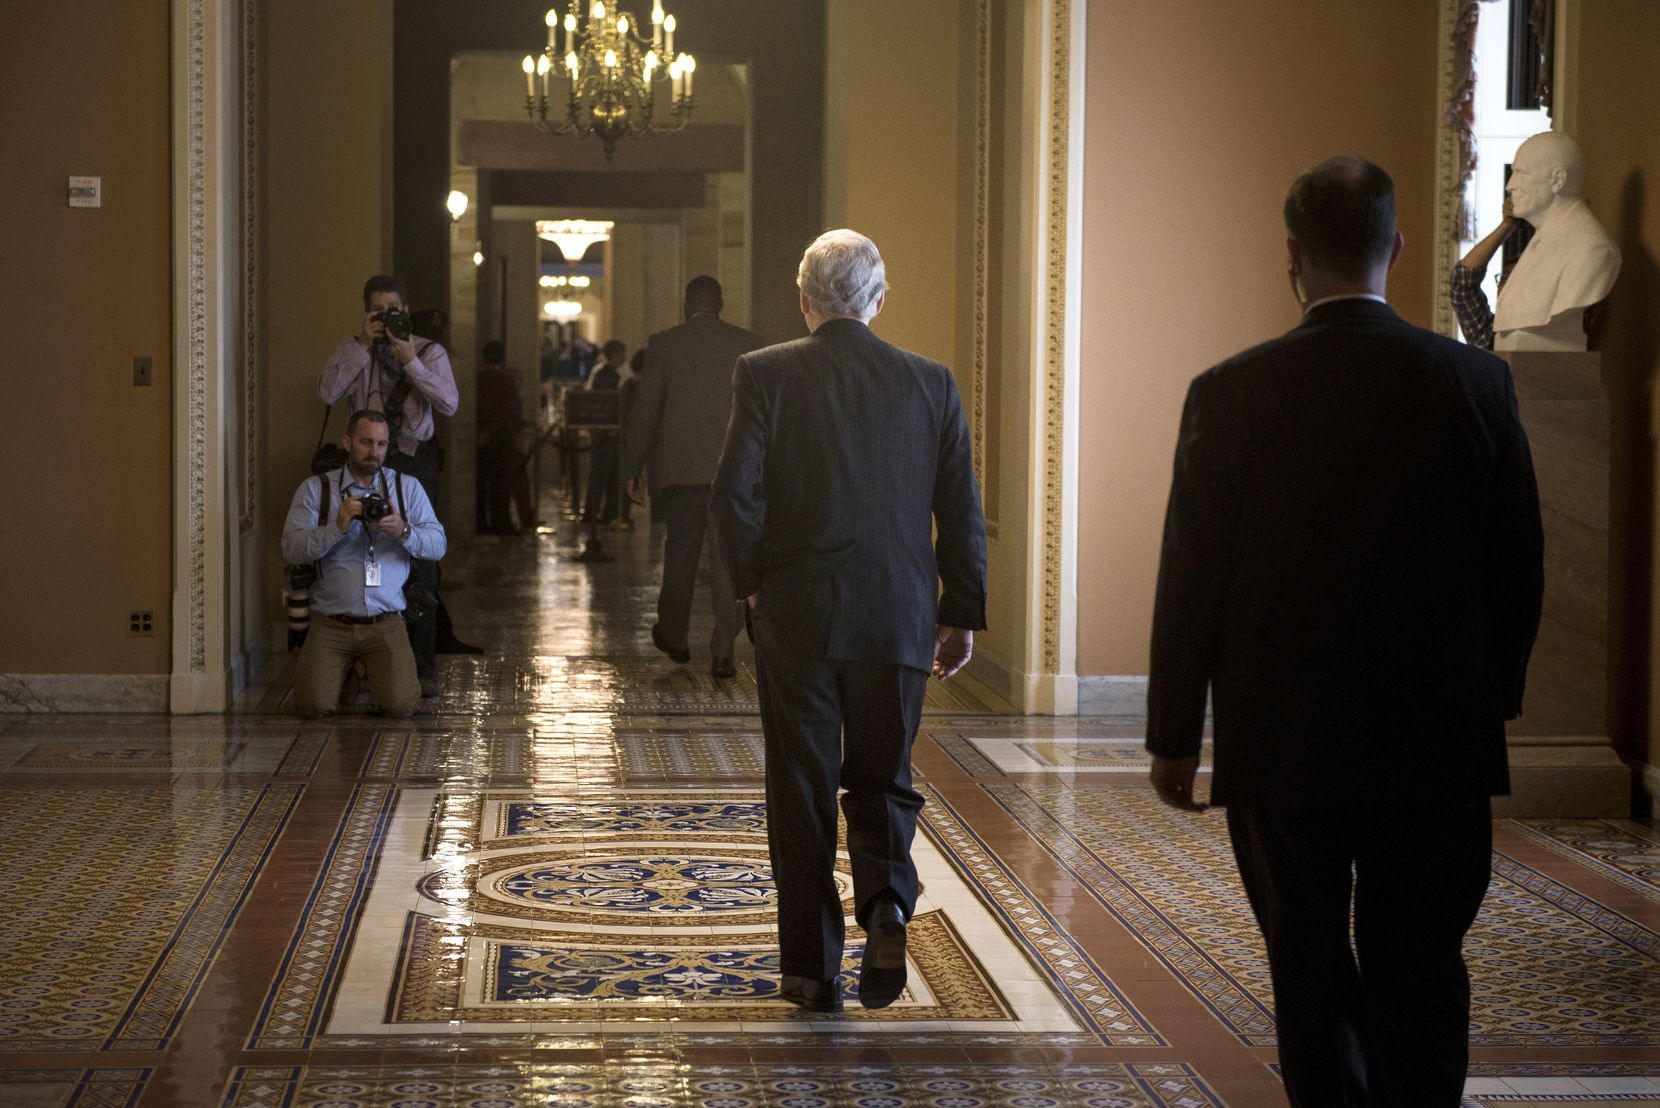 Senate Majority Leader Mitch McConnell (R-Ky.) after news conference on Capitol Hill, in Washington, April 25, 2017. Three days before the deadline to avert a government shutdown, congressional leaders were negotiating a spending proposal on Tuesday that would supply no money for President Donald Trump's promised border wall with Mexico but would increase funding for White House priorities.